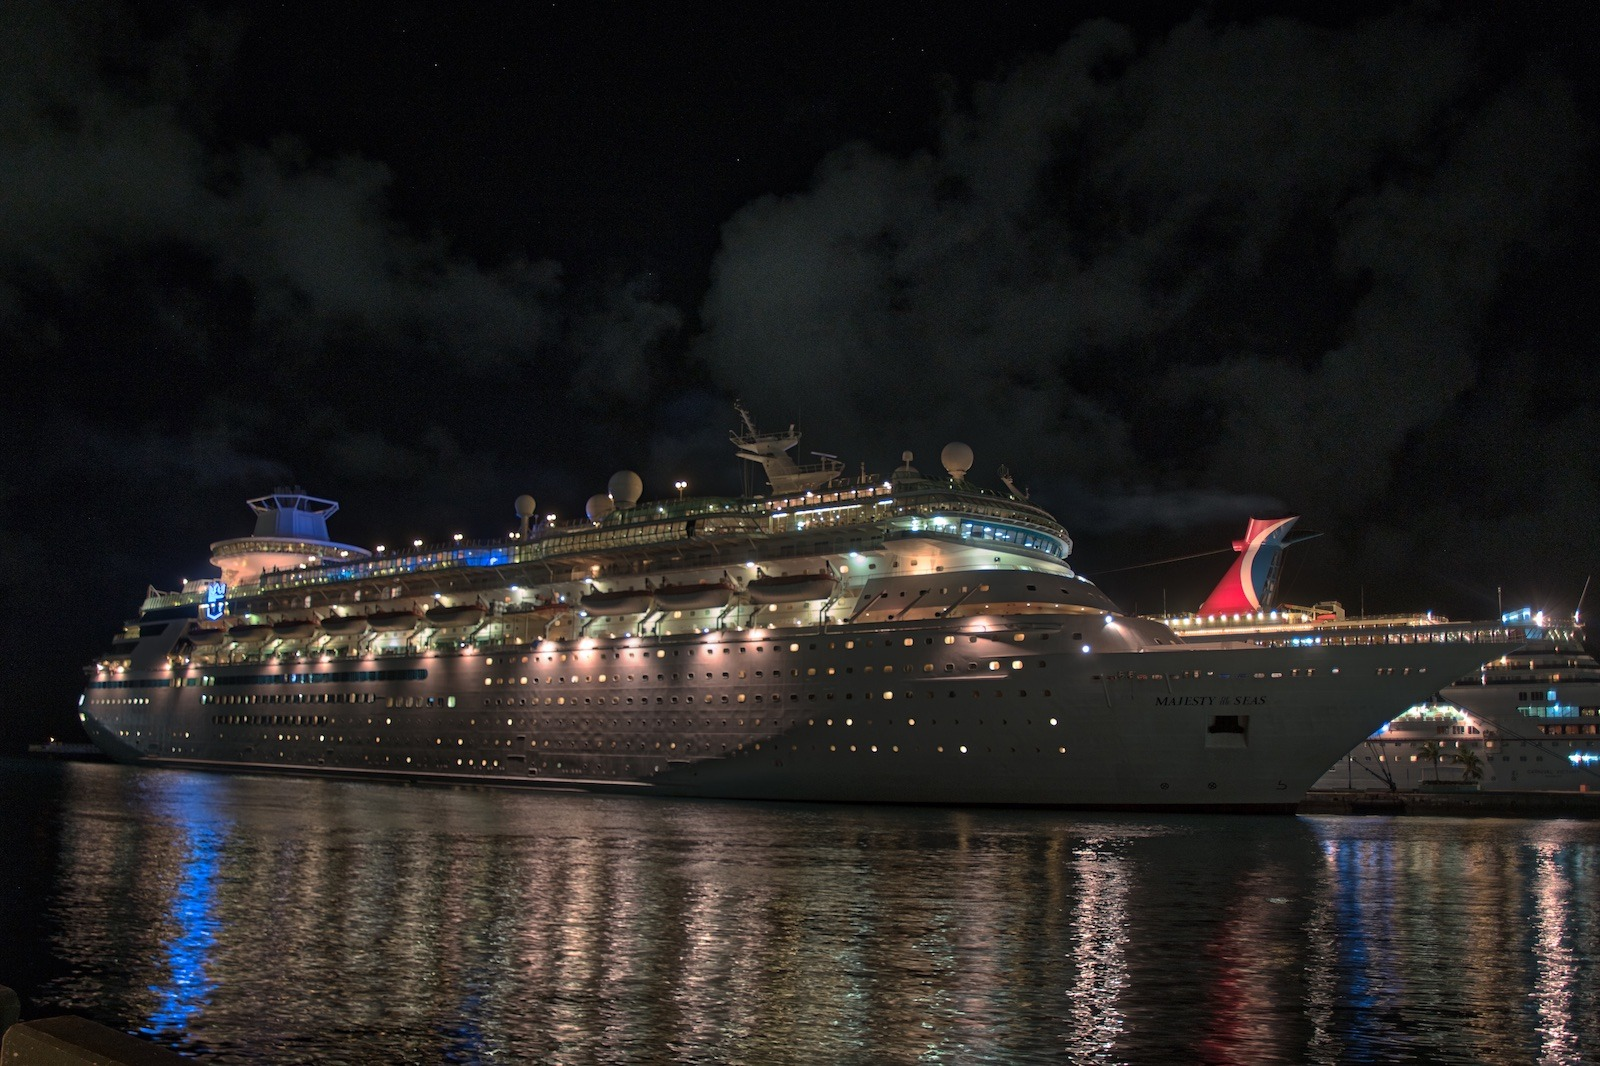 Family Travel Review: Royal Caribbean Majesty of the Seas Cruise to the...